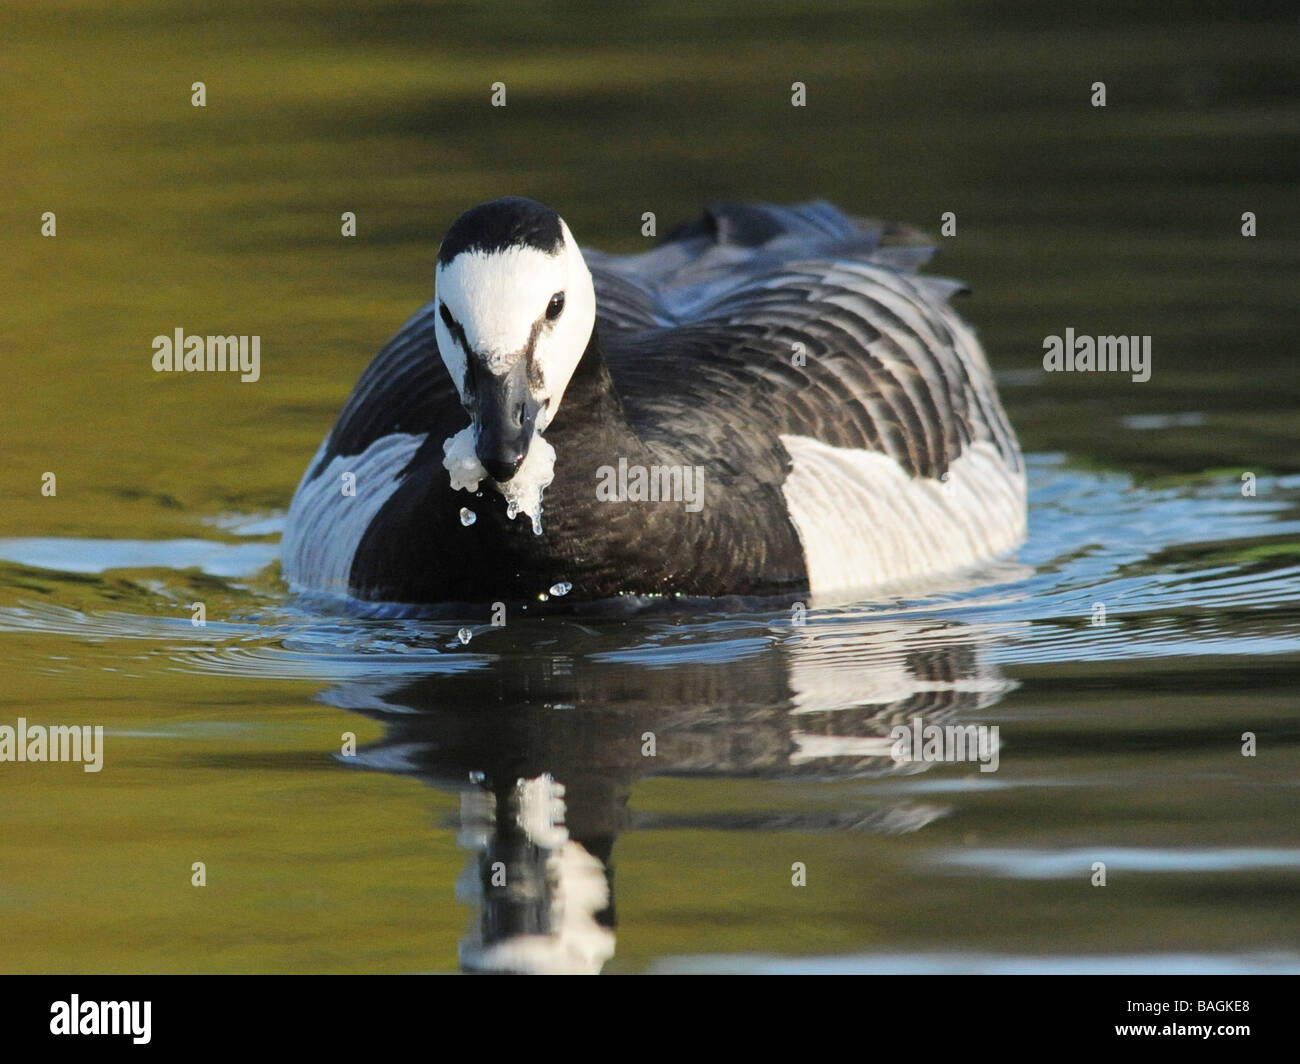 A black and white duck eating some wet bread. - Stock Image